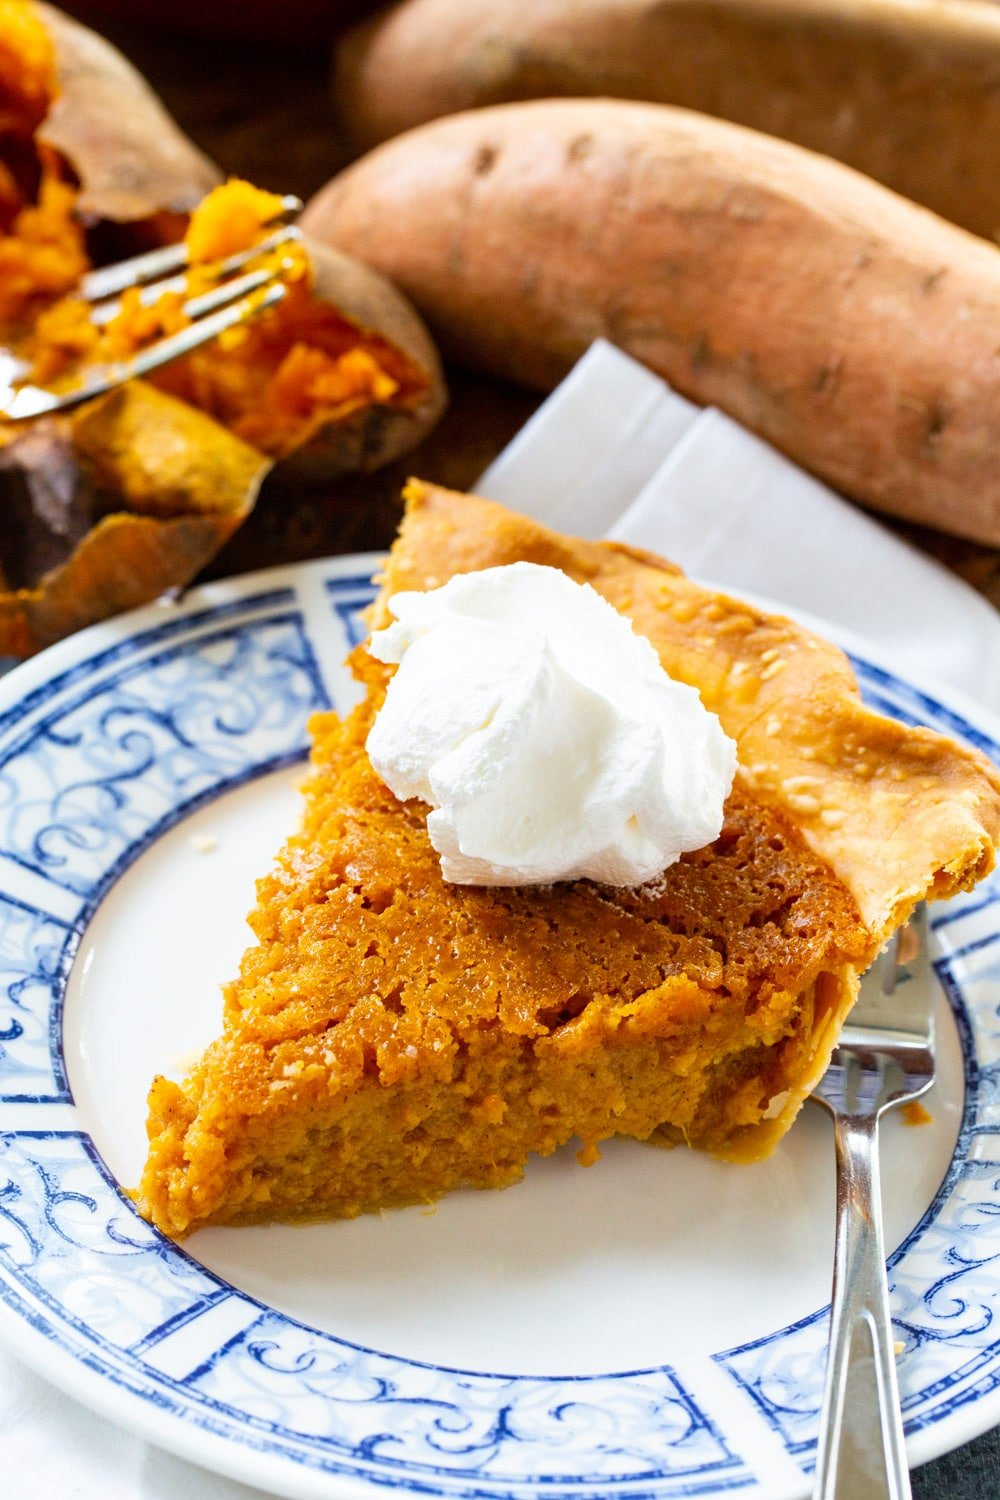 Slice of pie on a plate with sweet potatoes in background.